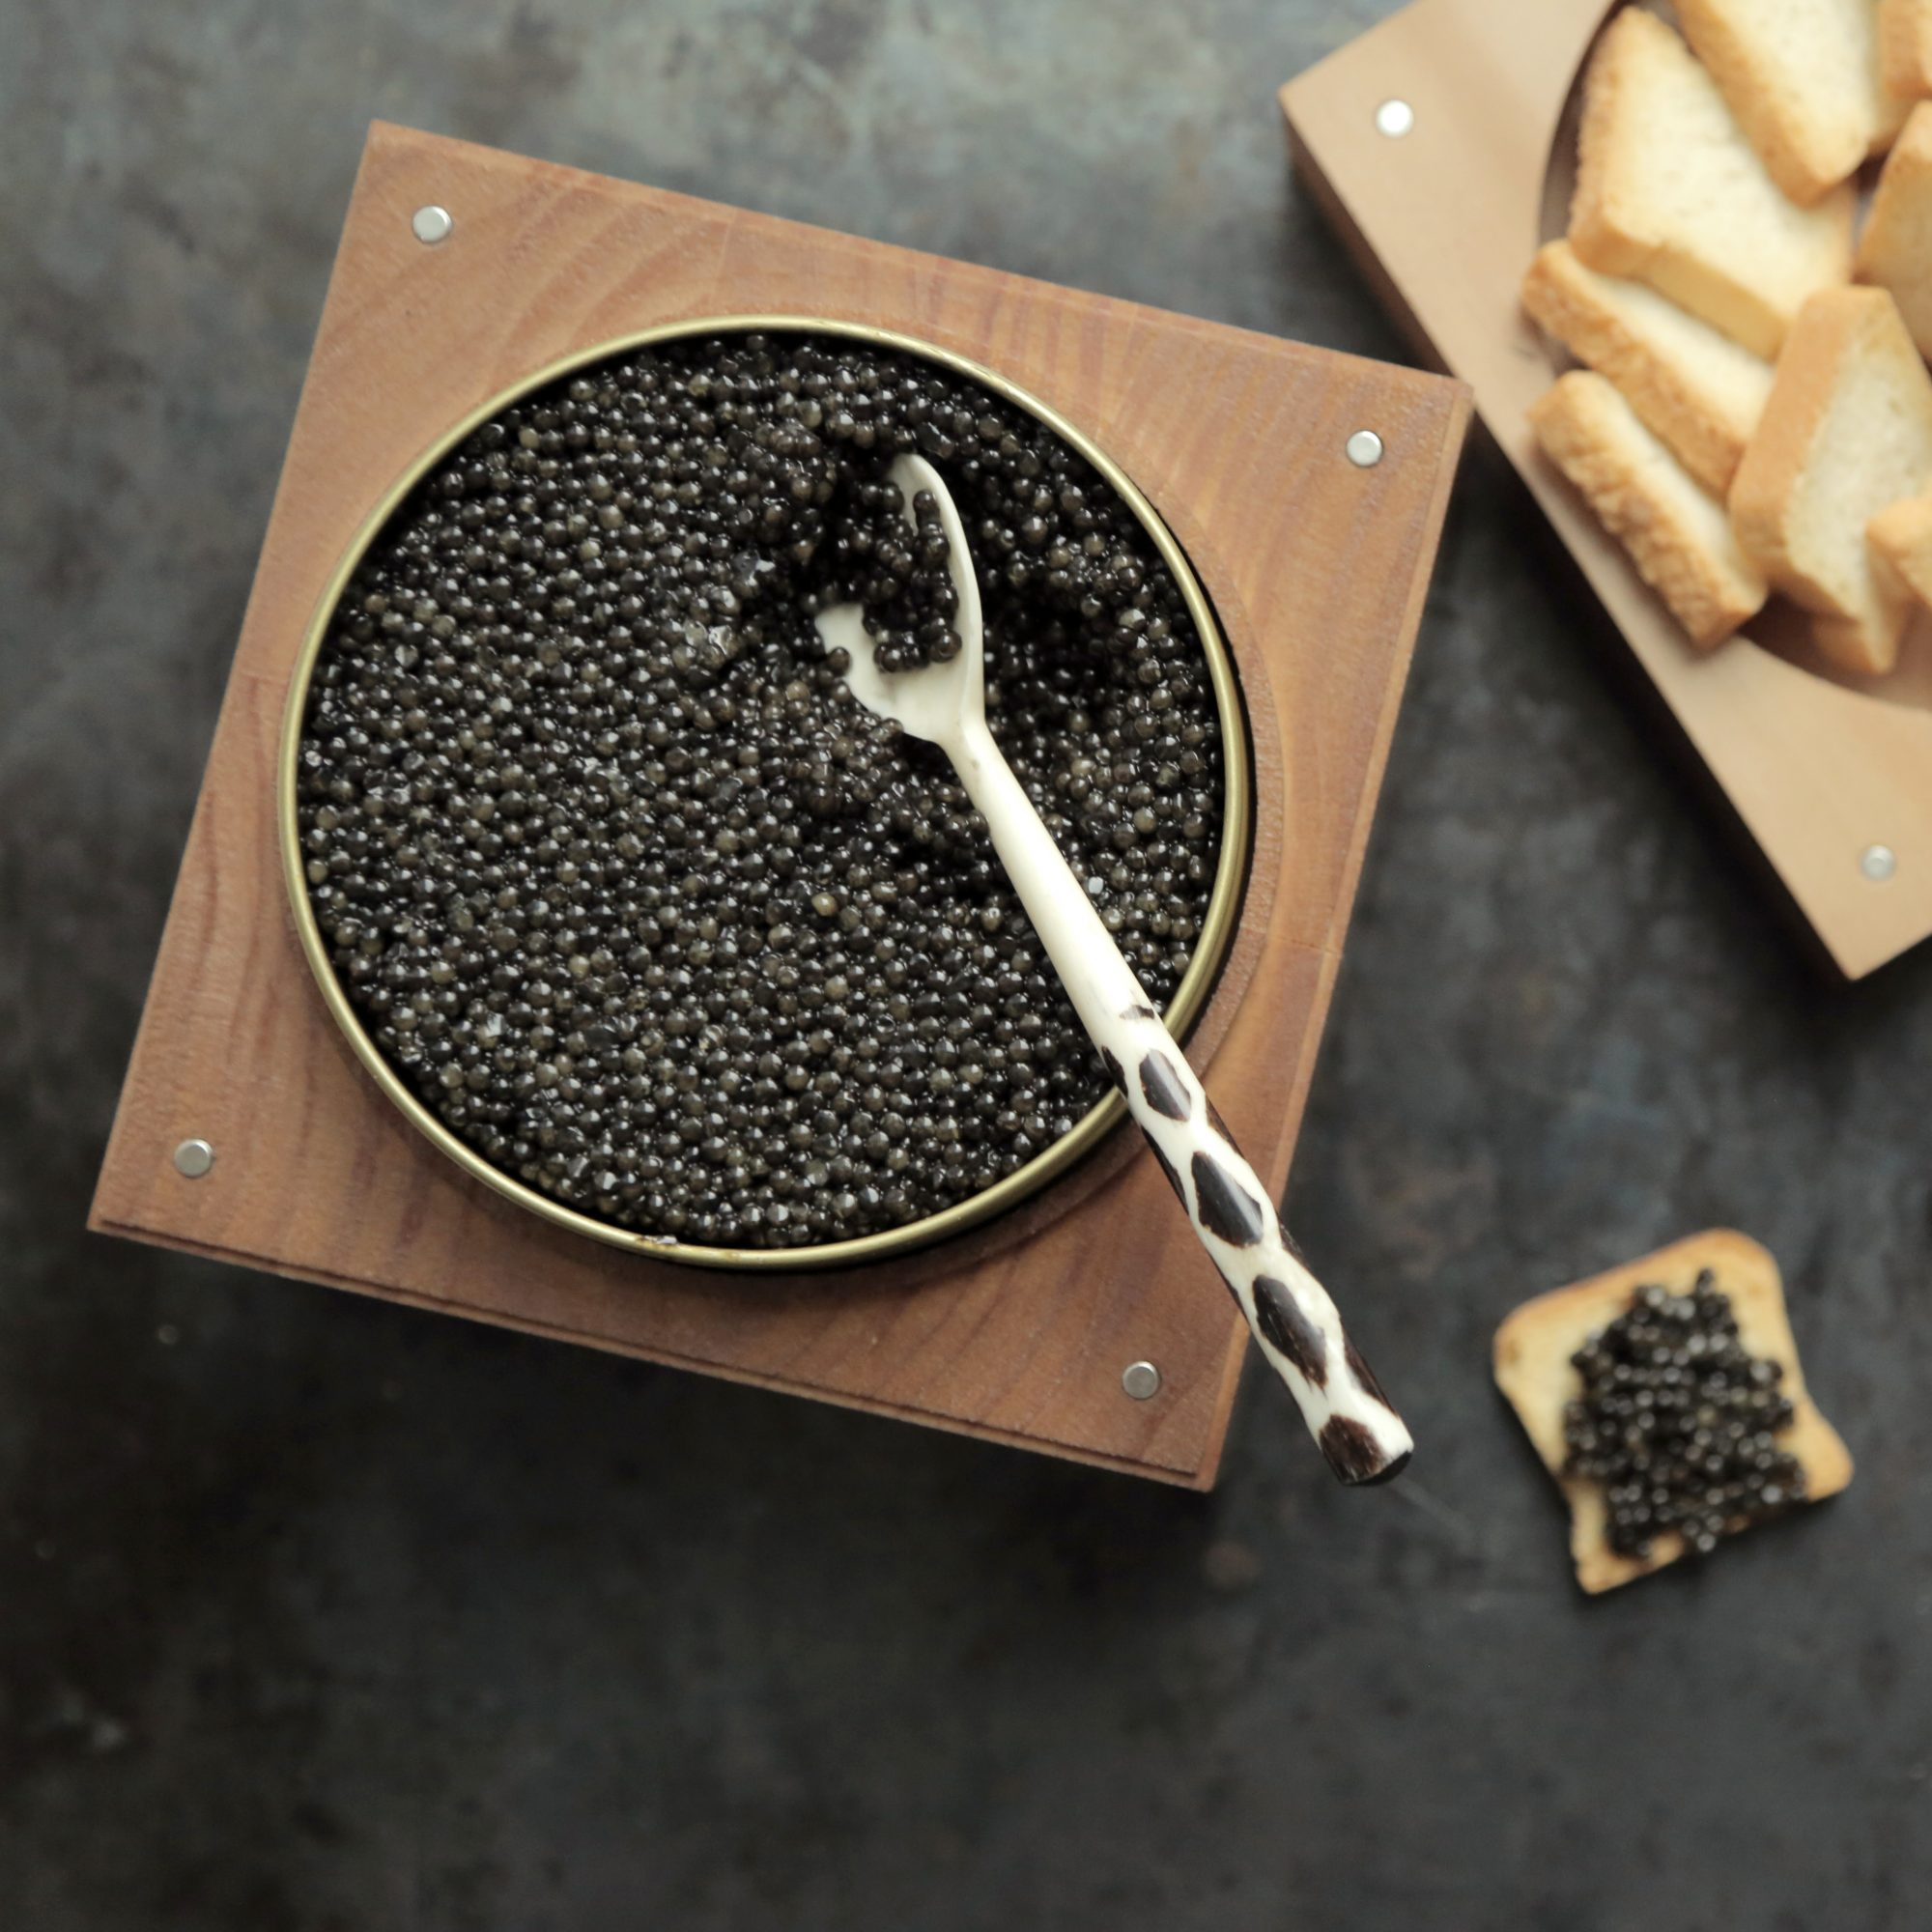 Caviar from podtopolnikov: for the winter and for every day